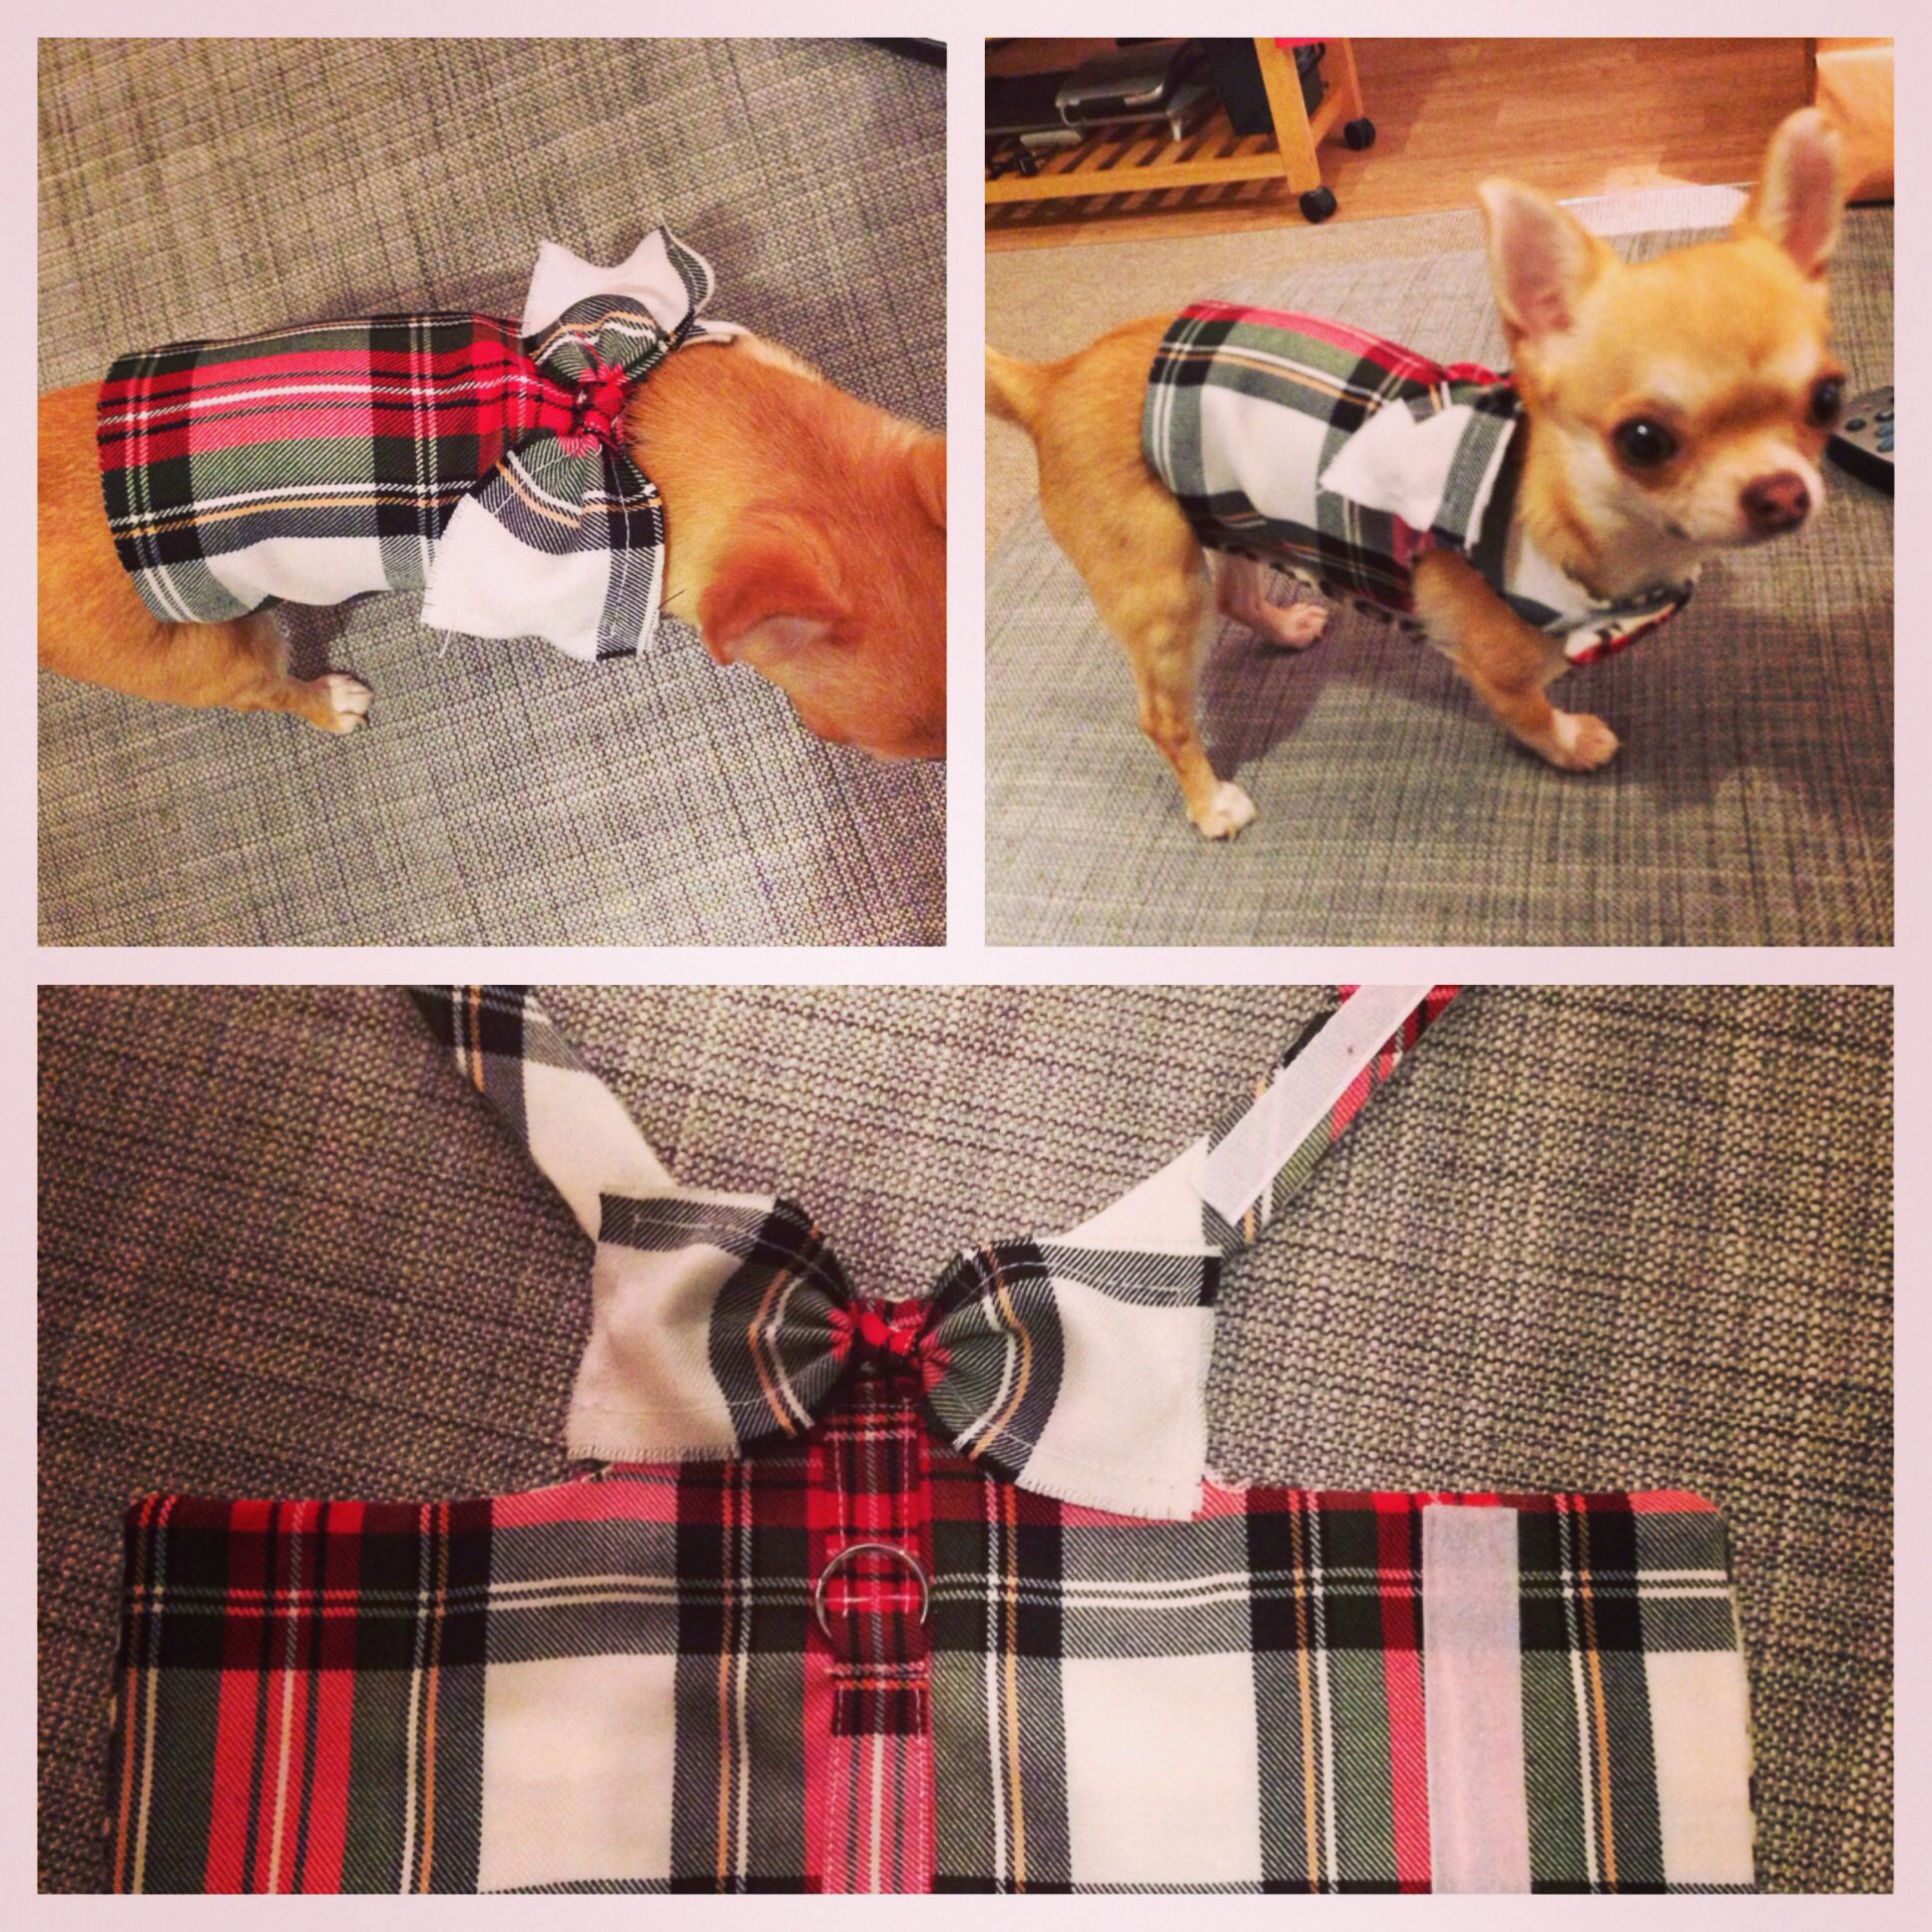 Peaches The Chihuahua In Her Diy Handmade Tartan Dog Harness With